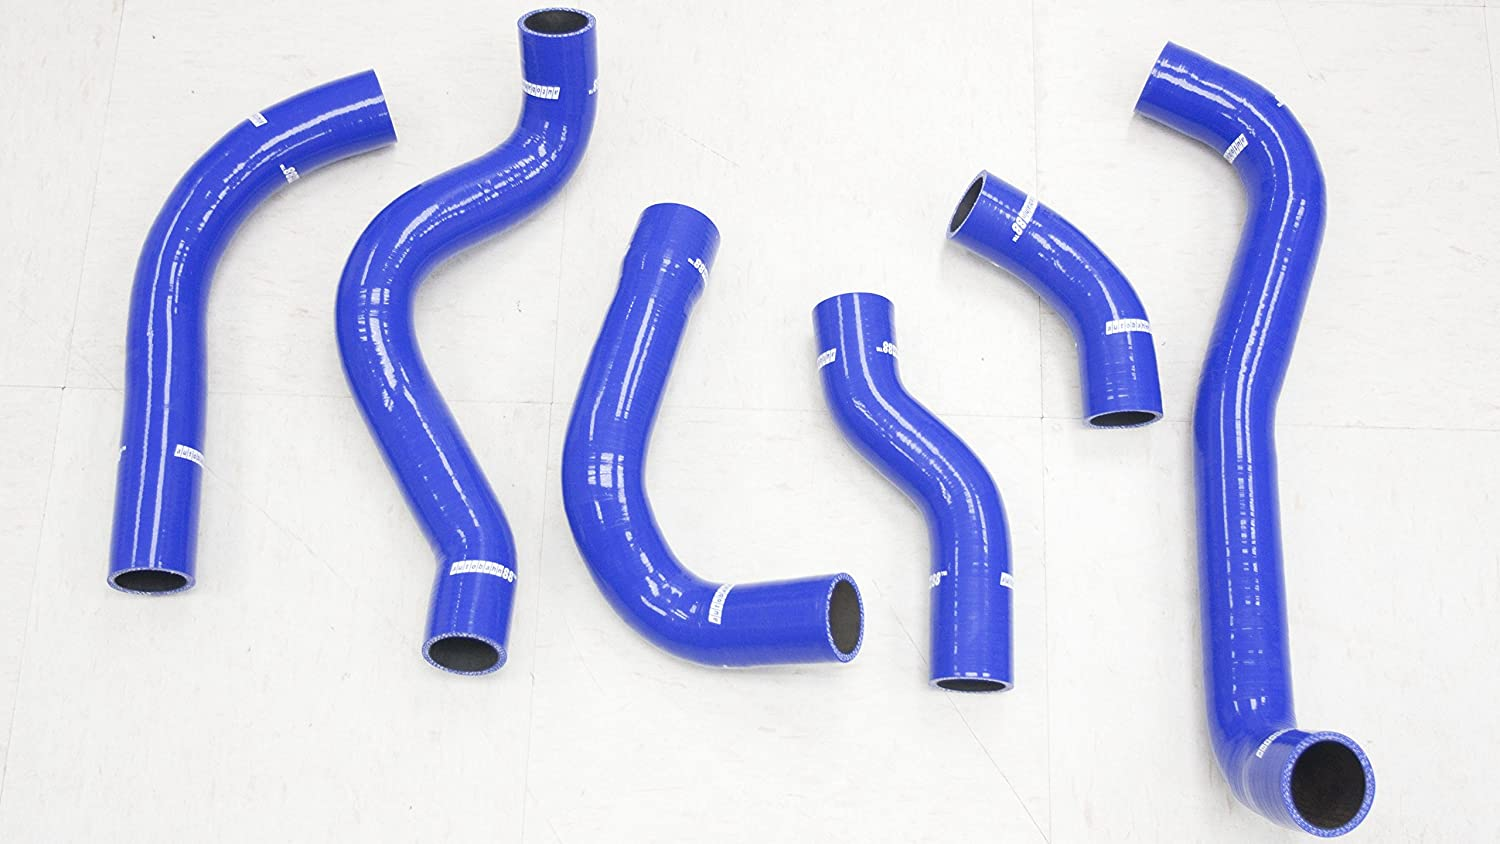 Blue -with Clamp Set Autobahn88 Radiator Coolant Silicone Hose Kit for 1992-1996 Mitsubishi Lancer Evolution EVO 1 2 3 CD9A CE9A 4G63